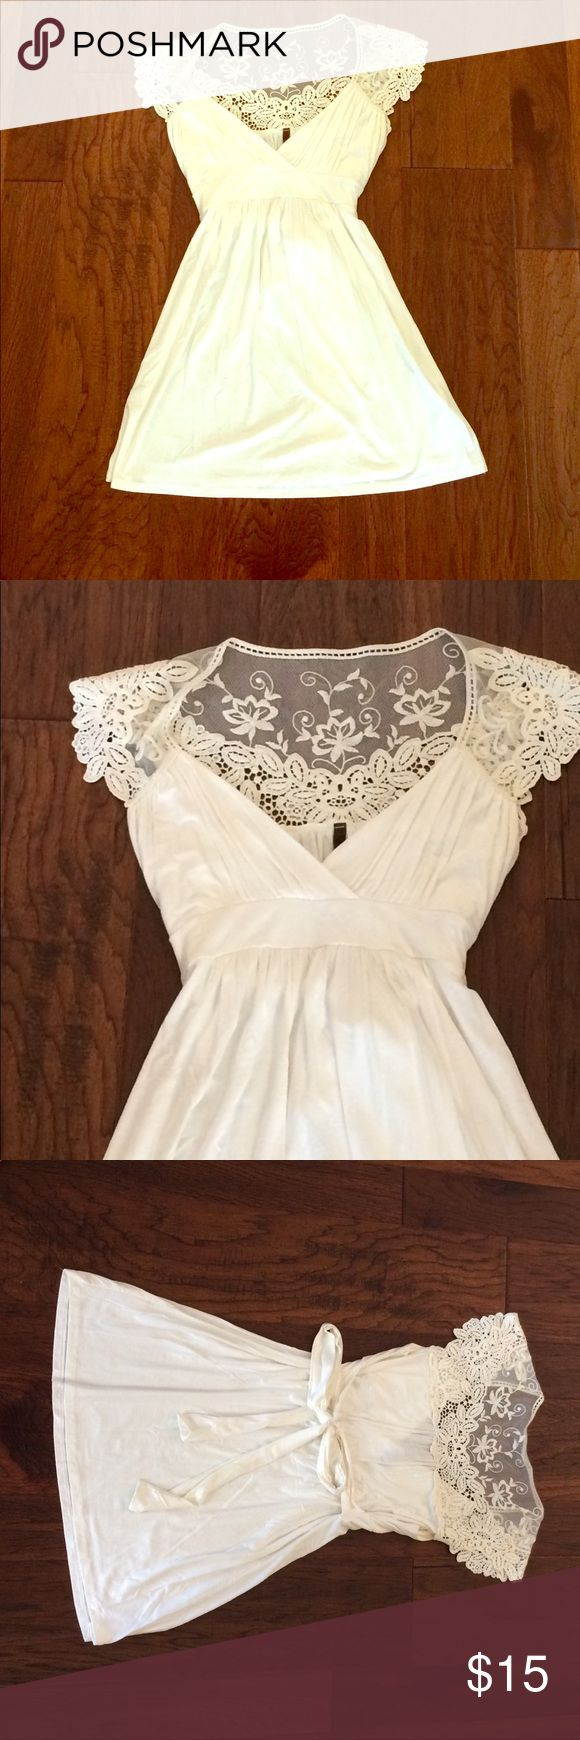 Long cream short sleeved top with lace detail Long cream colored short sleeved top with empire waist and tie under bust. Beautiful lace detail and v-neck. Longer length could be a tunic on a shorter person. Worn only once. princess ri riu Tops Blouses